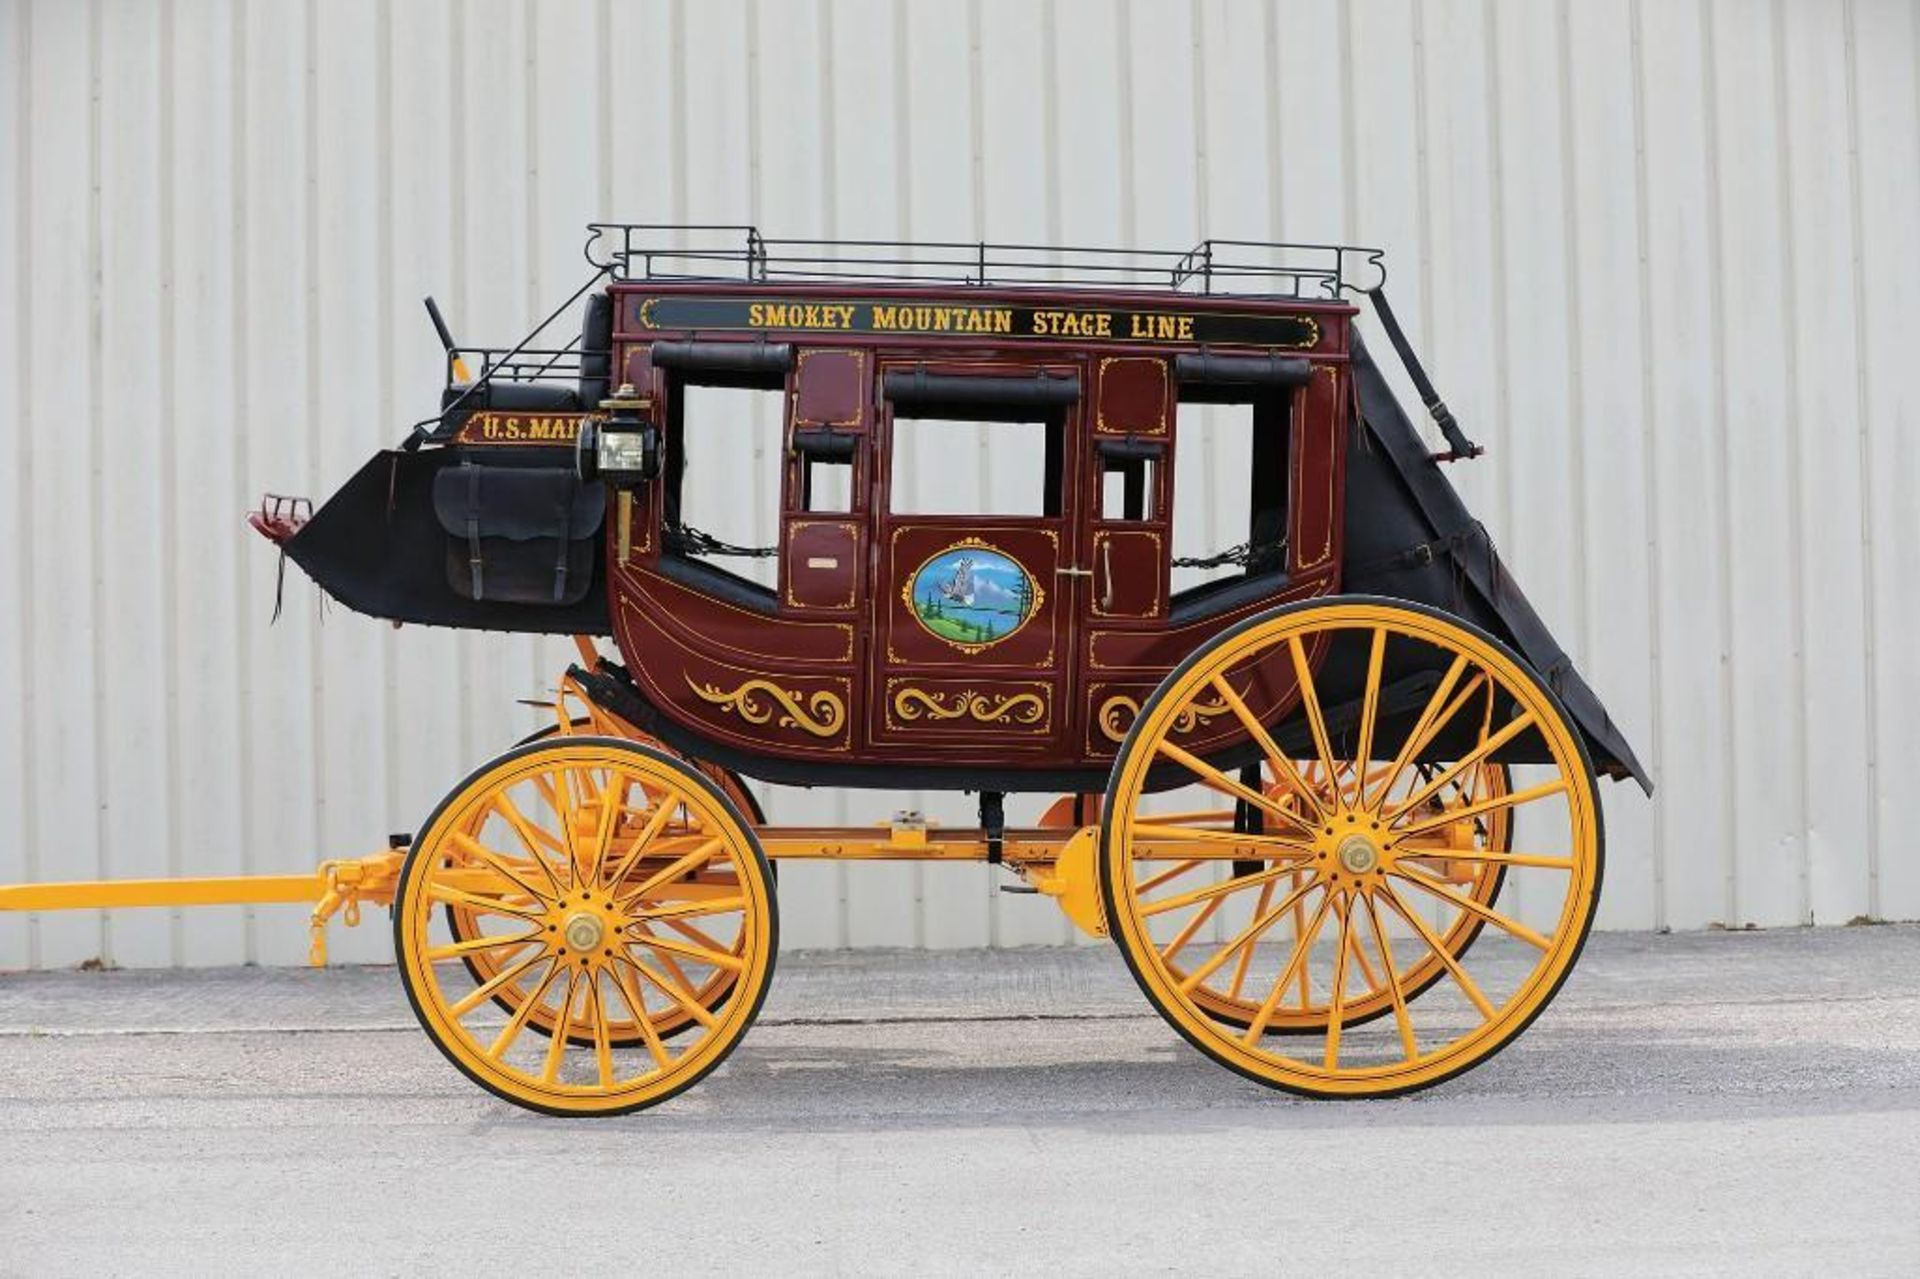 LATHAM Stagecoach, Built in Fortuna, Missouri in 2001, Mint Condition, Hooked Twice for Parades